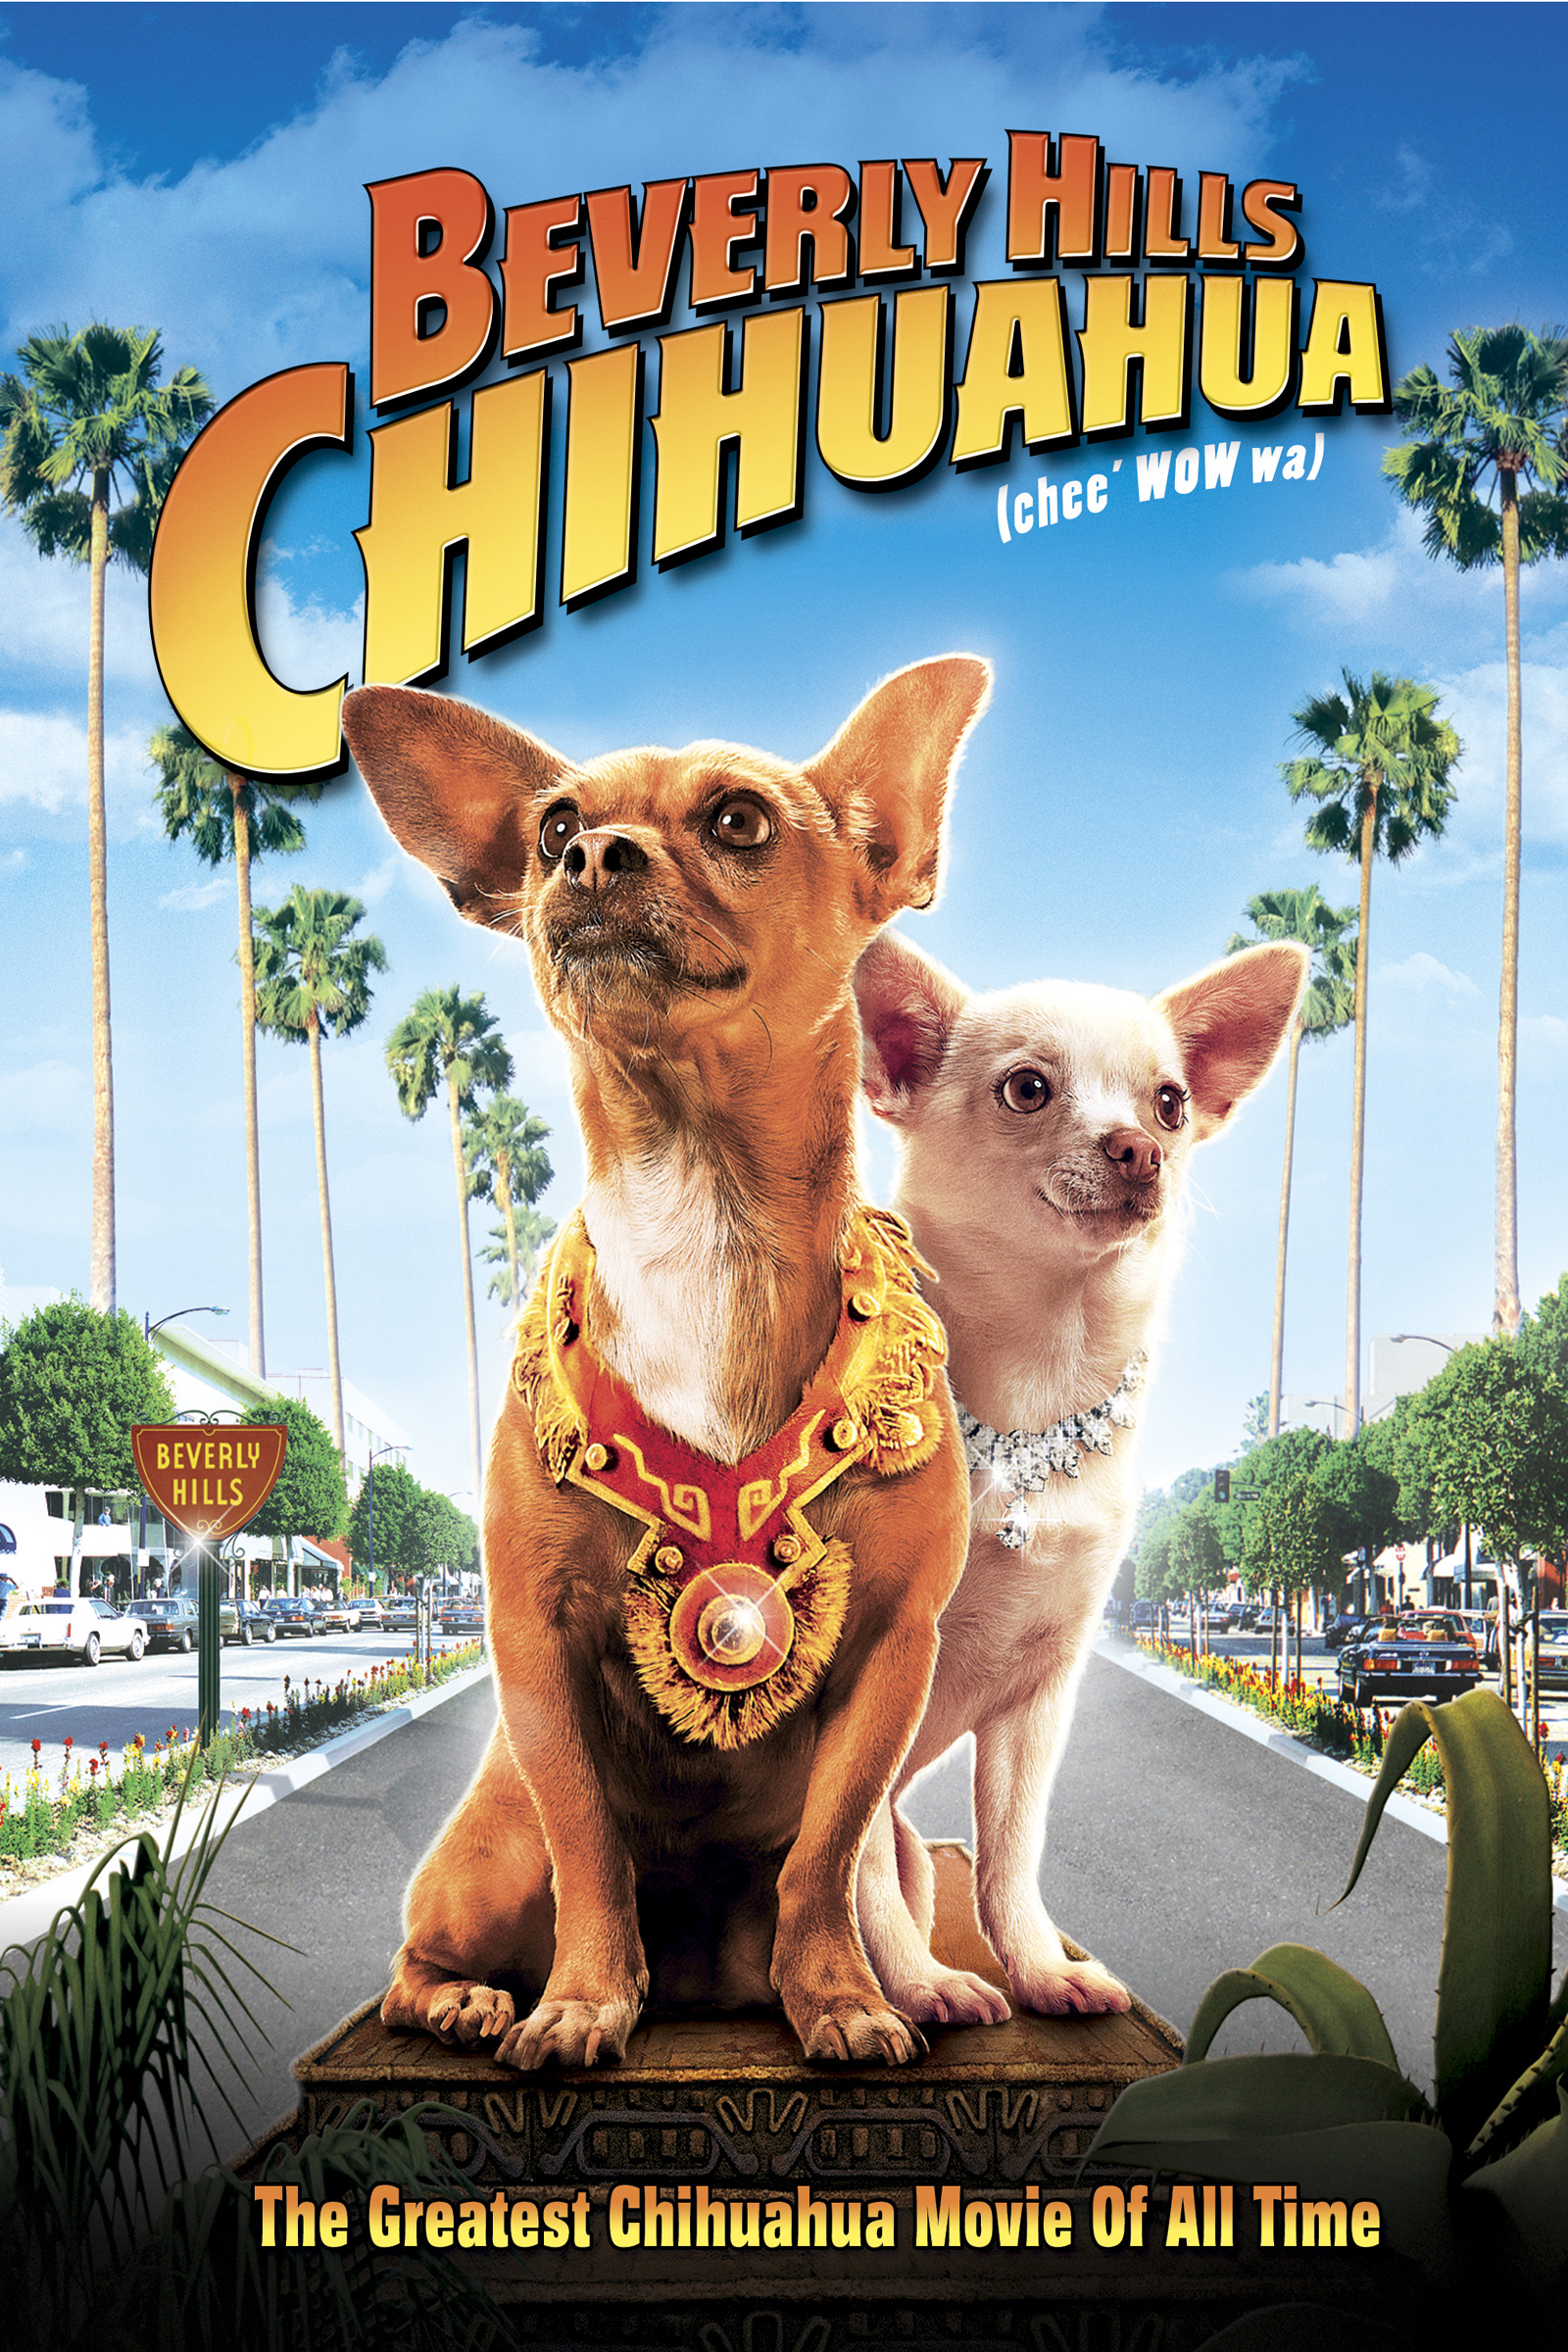 chihuahua movies itunes movies beverly hills chihuahua 9597